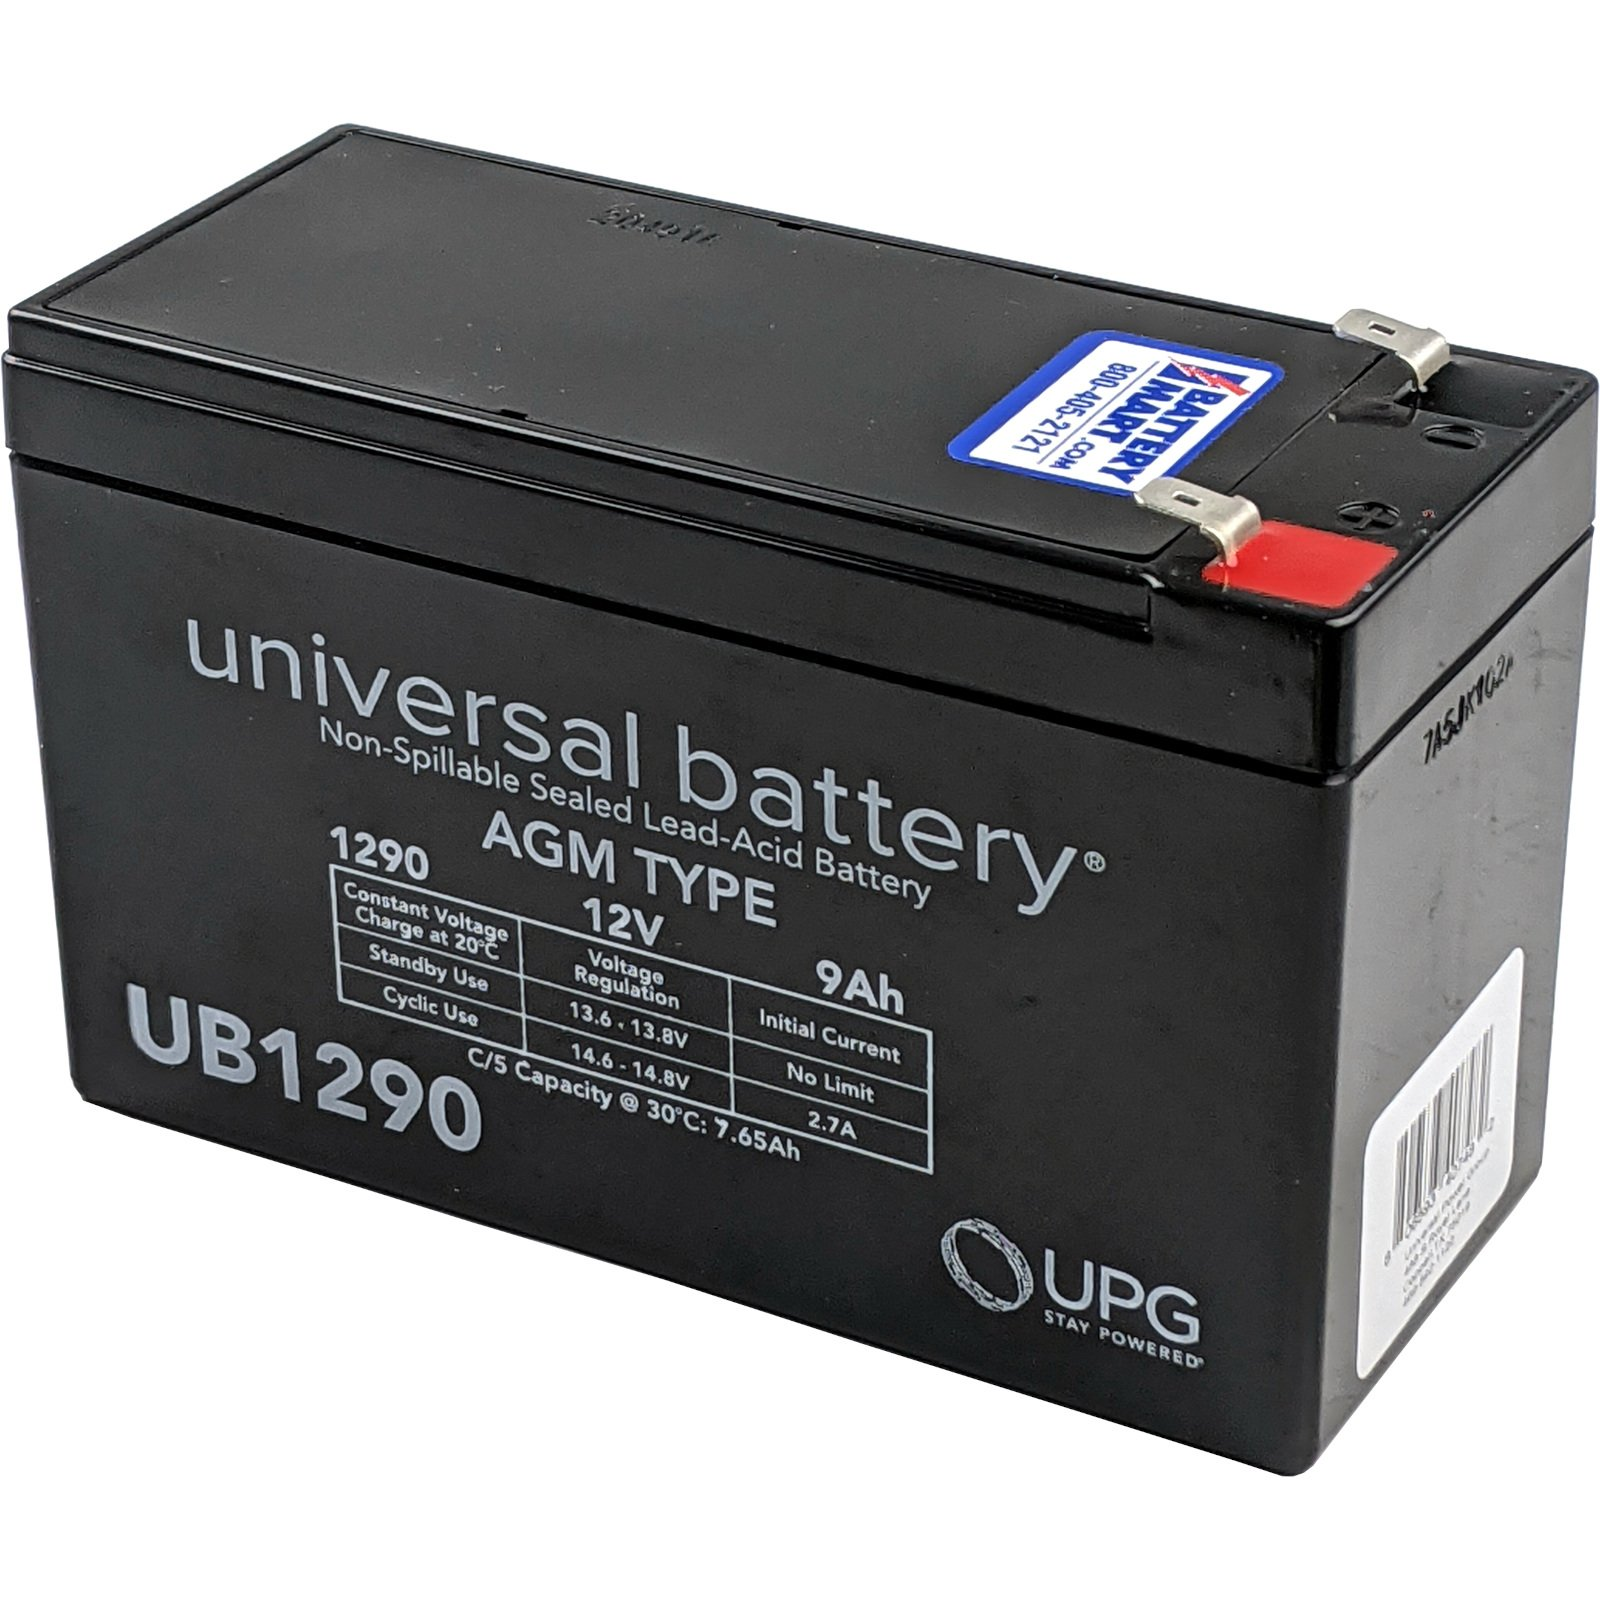 Minuteman Pro 320 Replacement Battery Rechargeable, high Rate